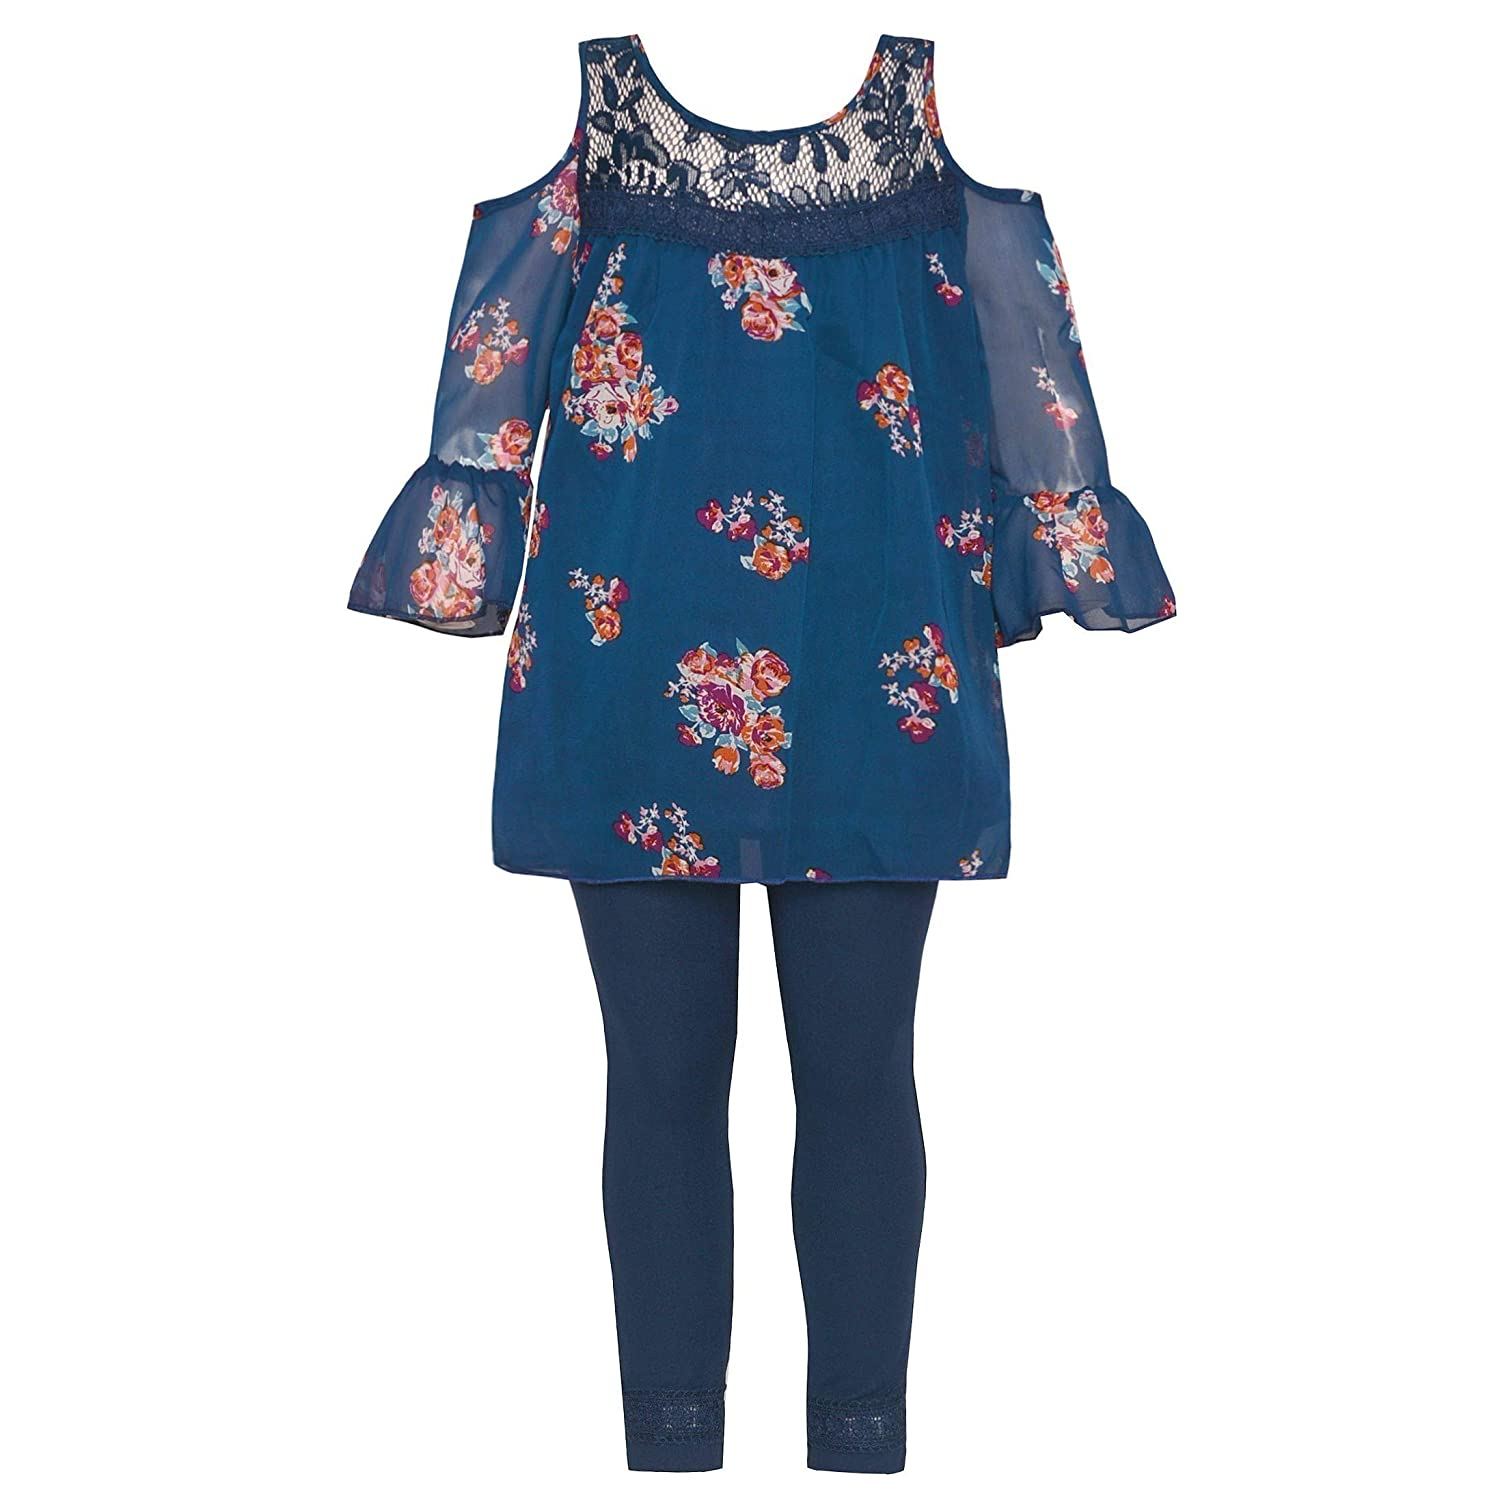 Little Girls Navy Floral Print Ruffle Cold Shoulder 2 Pc Legging Outfit 2T-6X